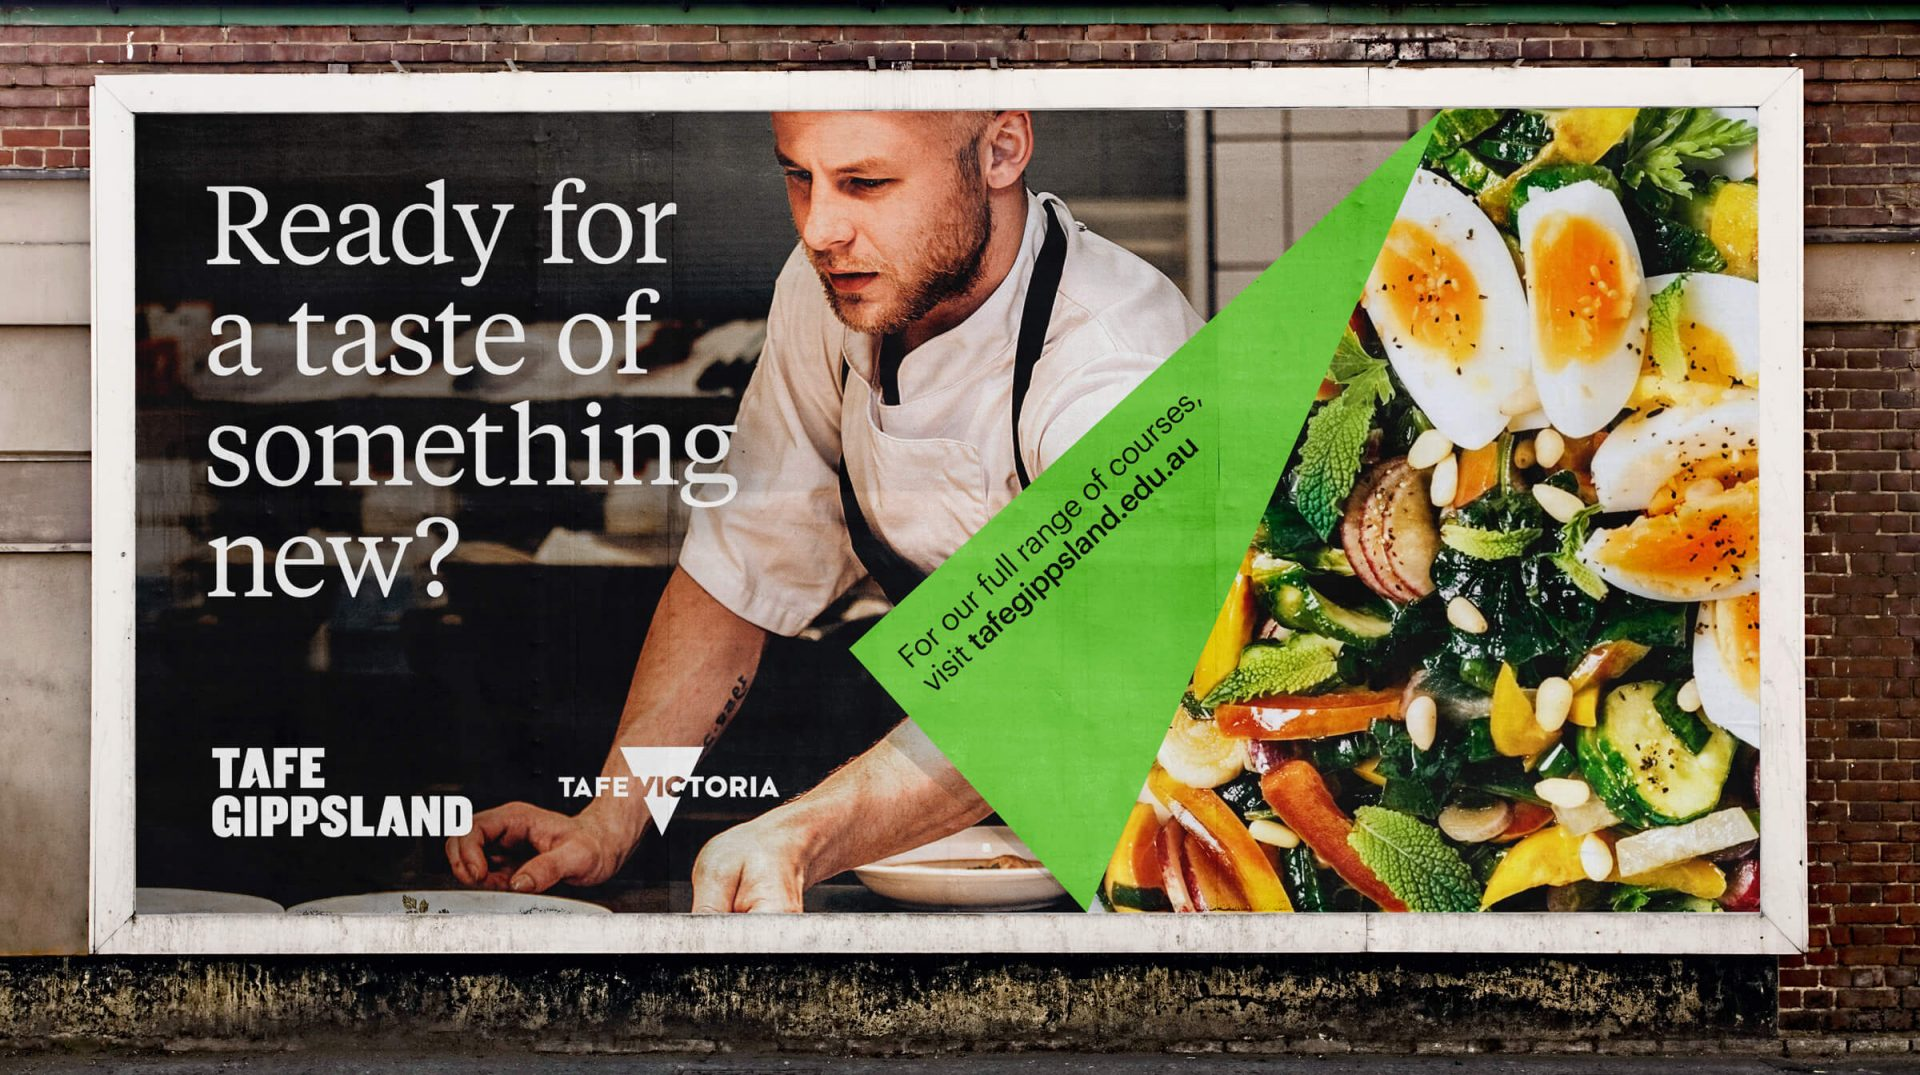 A billboard with an image of a chef on one side and a tasty salad on the other. It says 'Ready for a taste of something new'